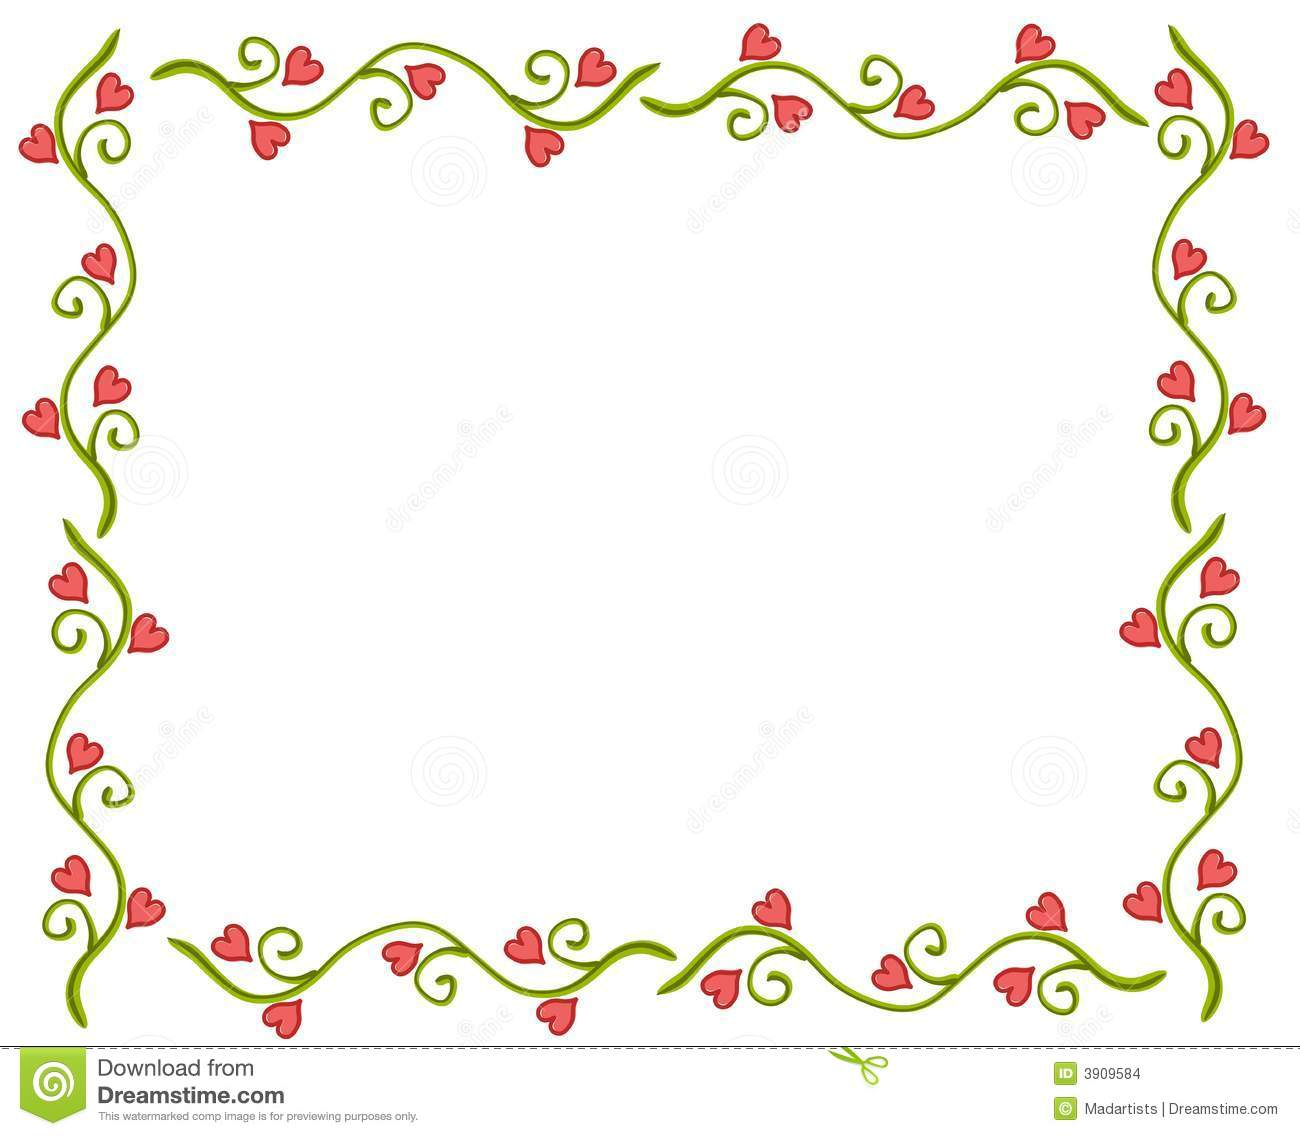 heart floral frame valentine - photo #9